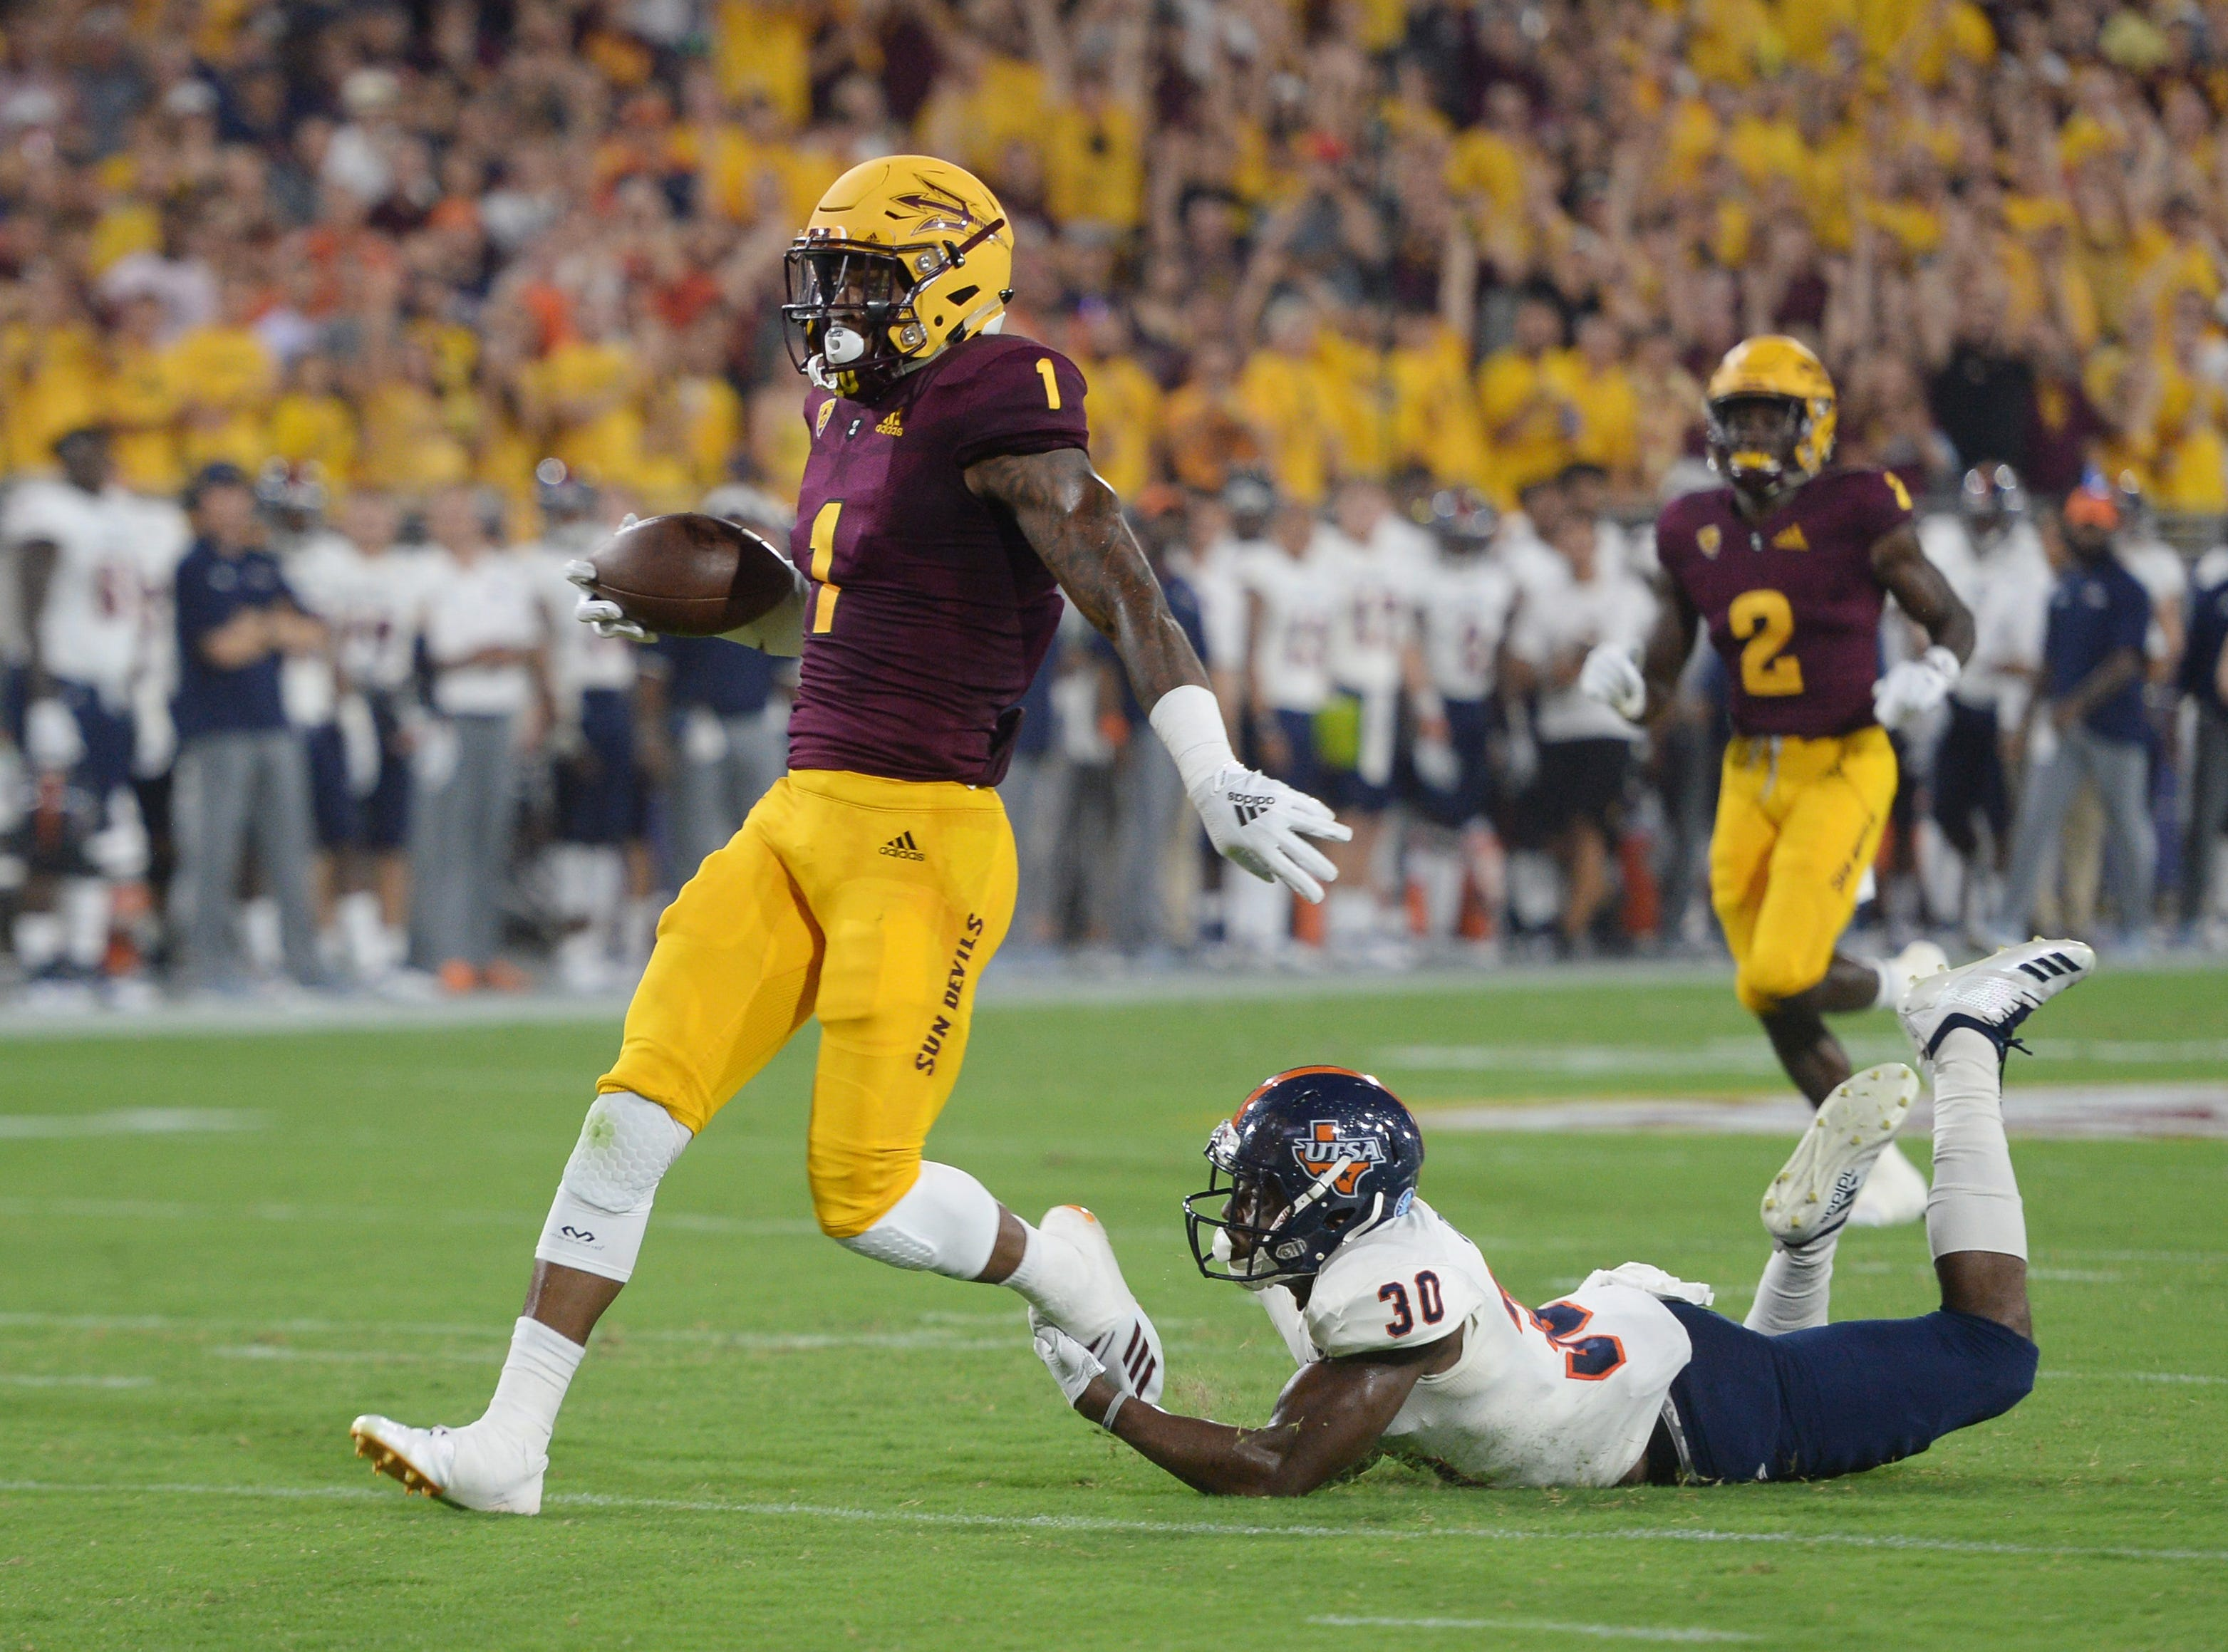 Sep 1, 2018; Tempe, AZ, USA; Arizona State Sun Devils wide receiver N'Keal Harry (1) runs past UTSA Roadrunners cornerback Stanley Dye Jr. (30) en route to a touchdown during the first half at Sun Devil Stadium.